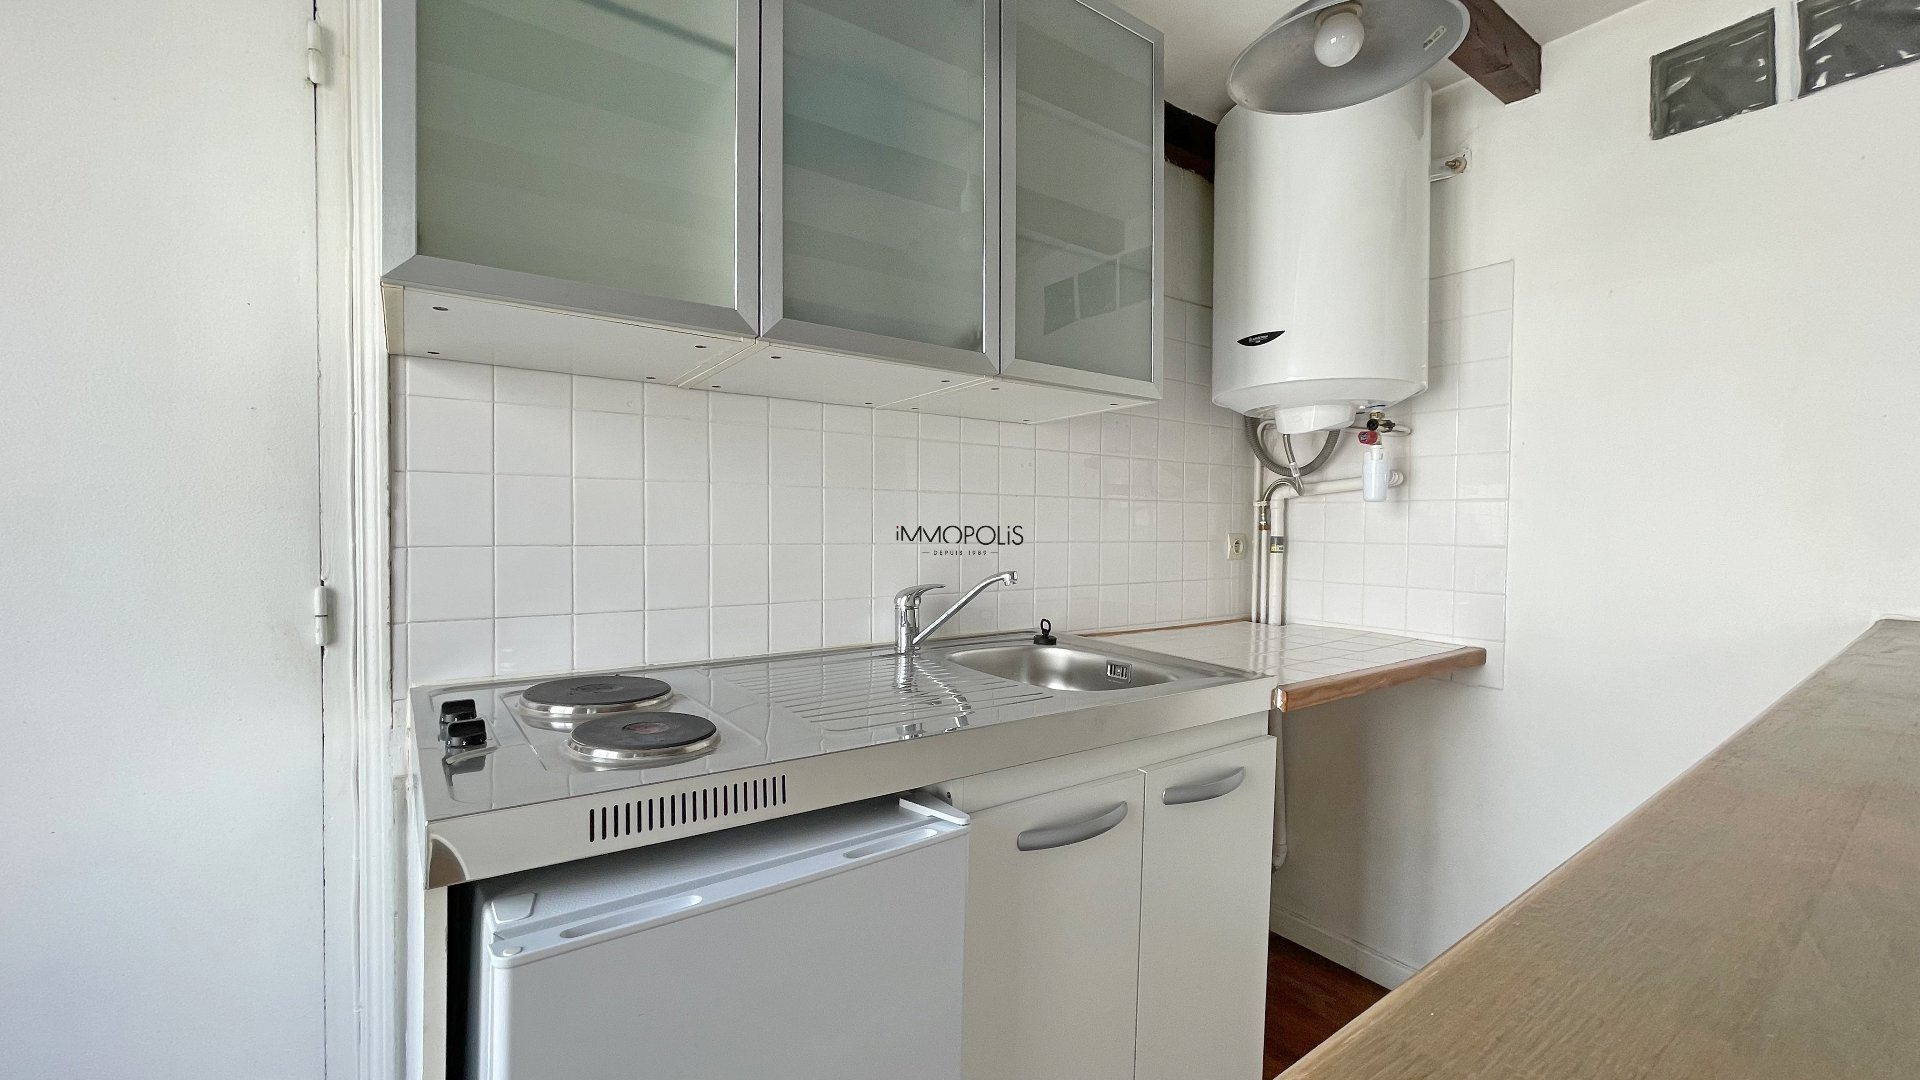 Montmartre, Abbesses, Beautiful studio in good condition in 4th and last floor, ceiling beams, quiet, on unobscured courtyard without opposite! 4